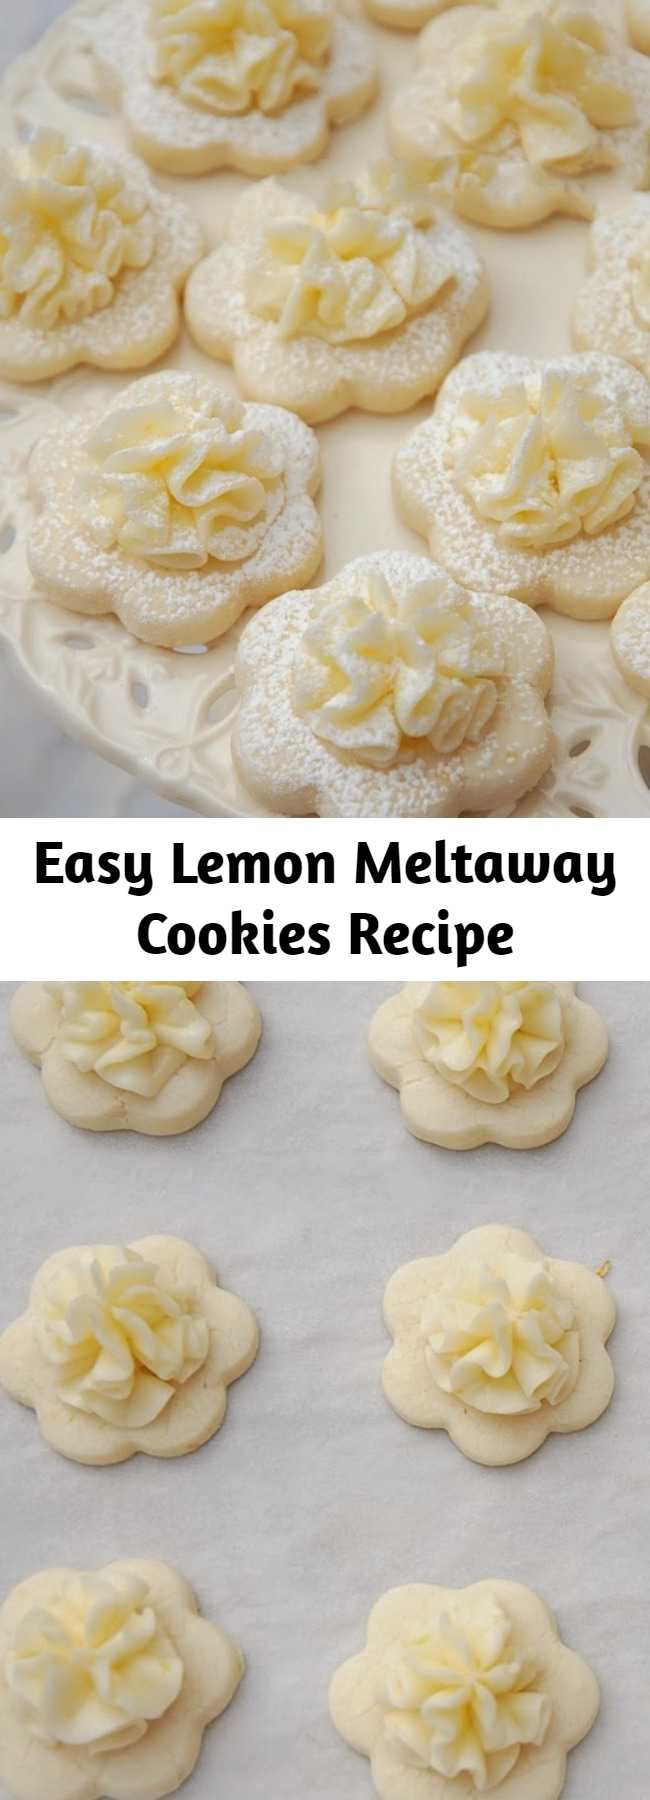 Easy Lemon Meltaway Cookies Recipe - What could be more lovely than Frilly Lemon Cookies at a Tea Party? I adore Lemon Meltaway Cookies and have been making them for Tea Parties for years.